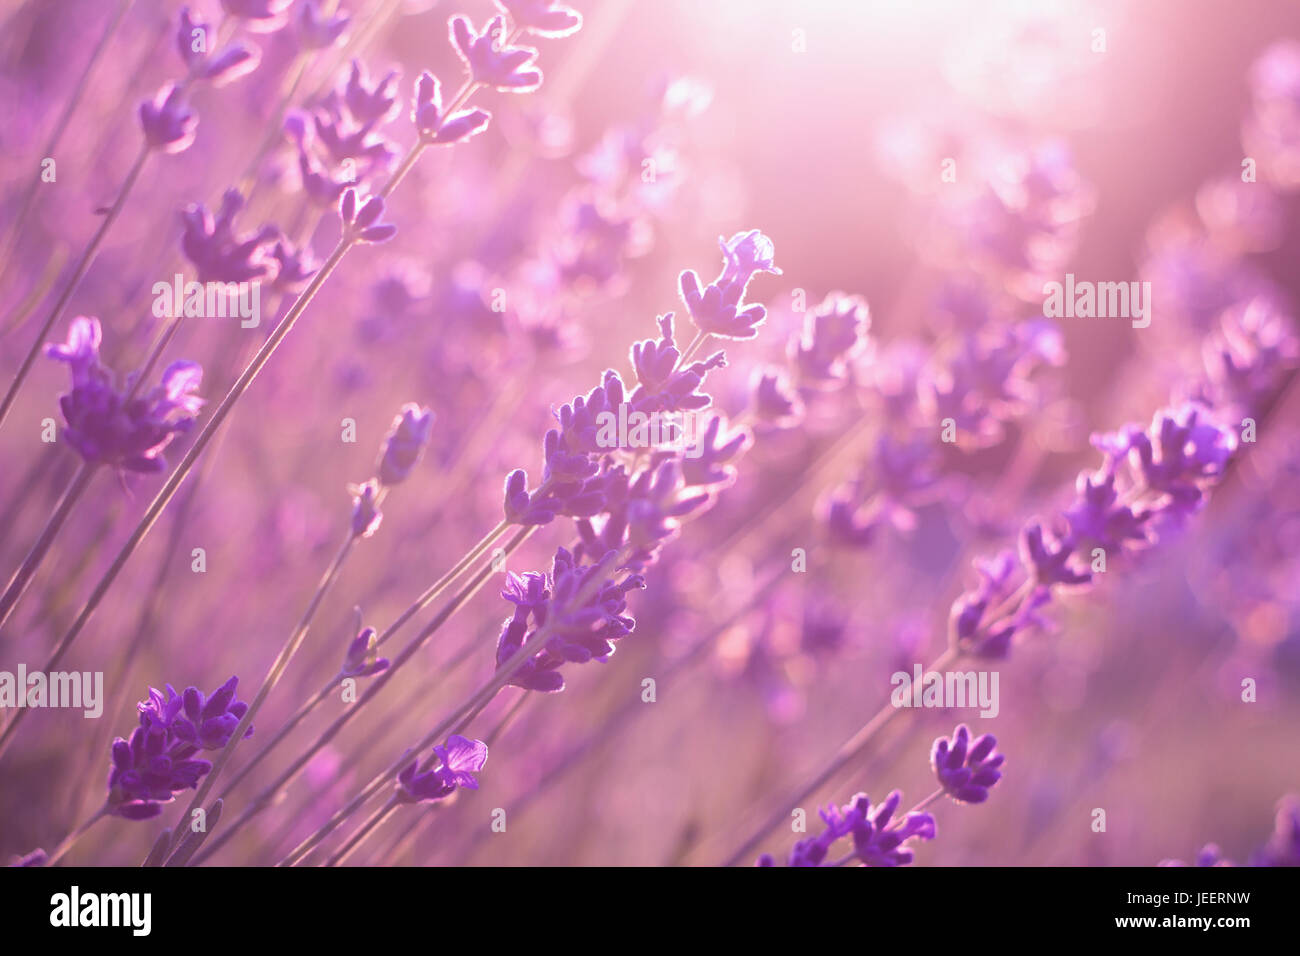 Purple Flowers At Sunset High Resolution Stock Photography And Images Alamy